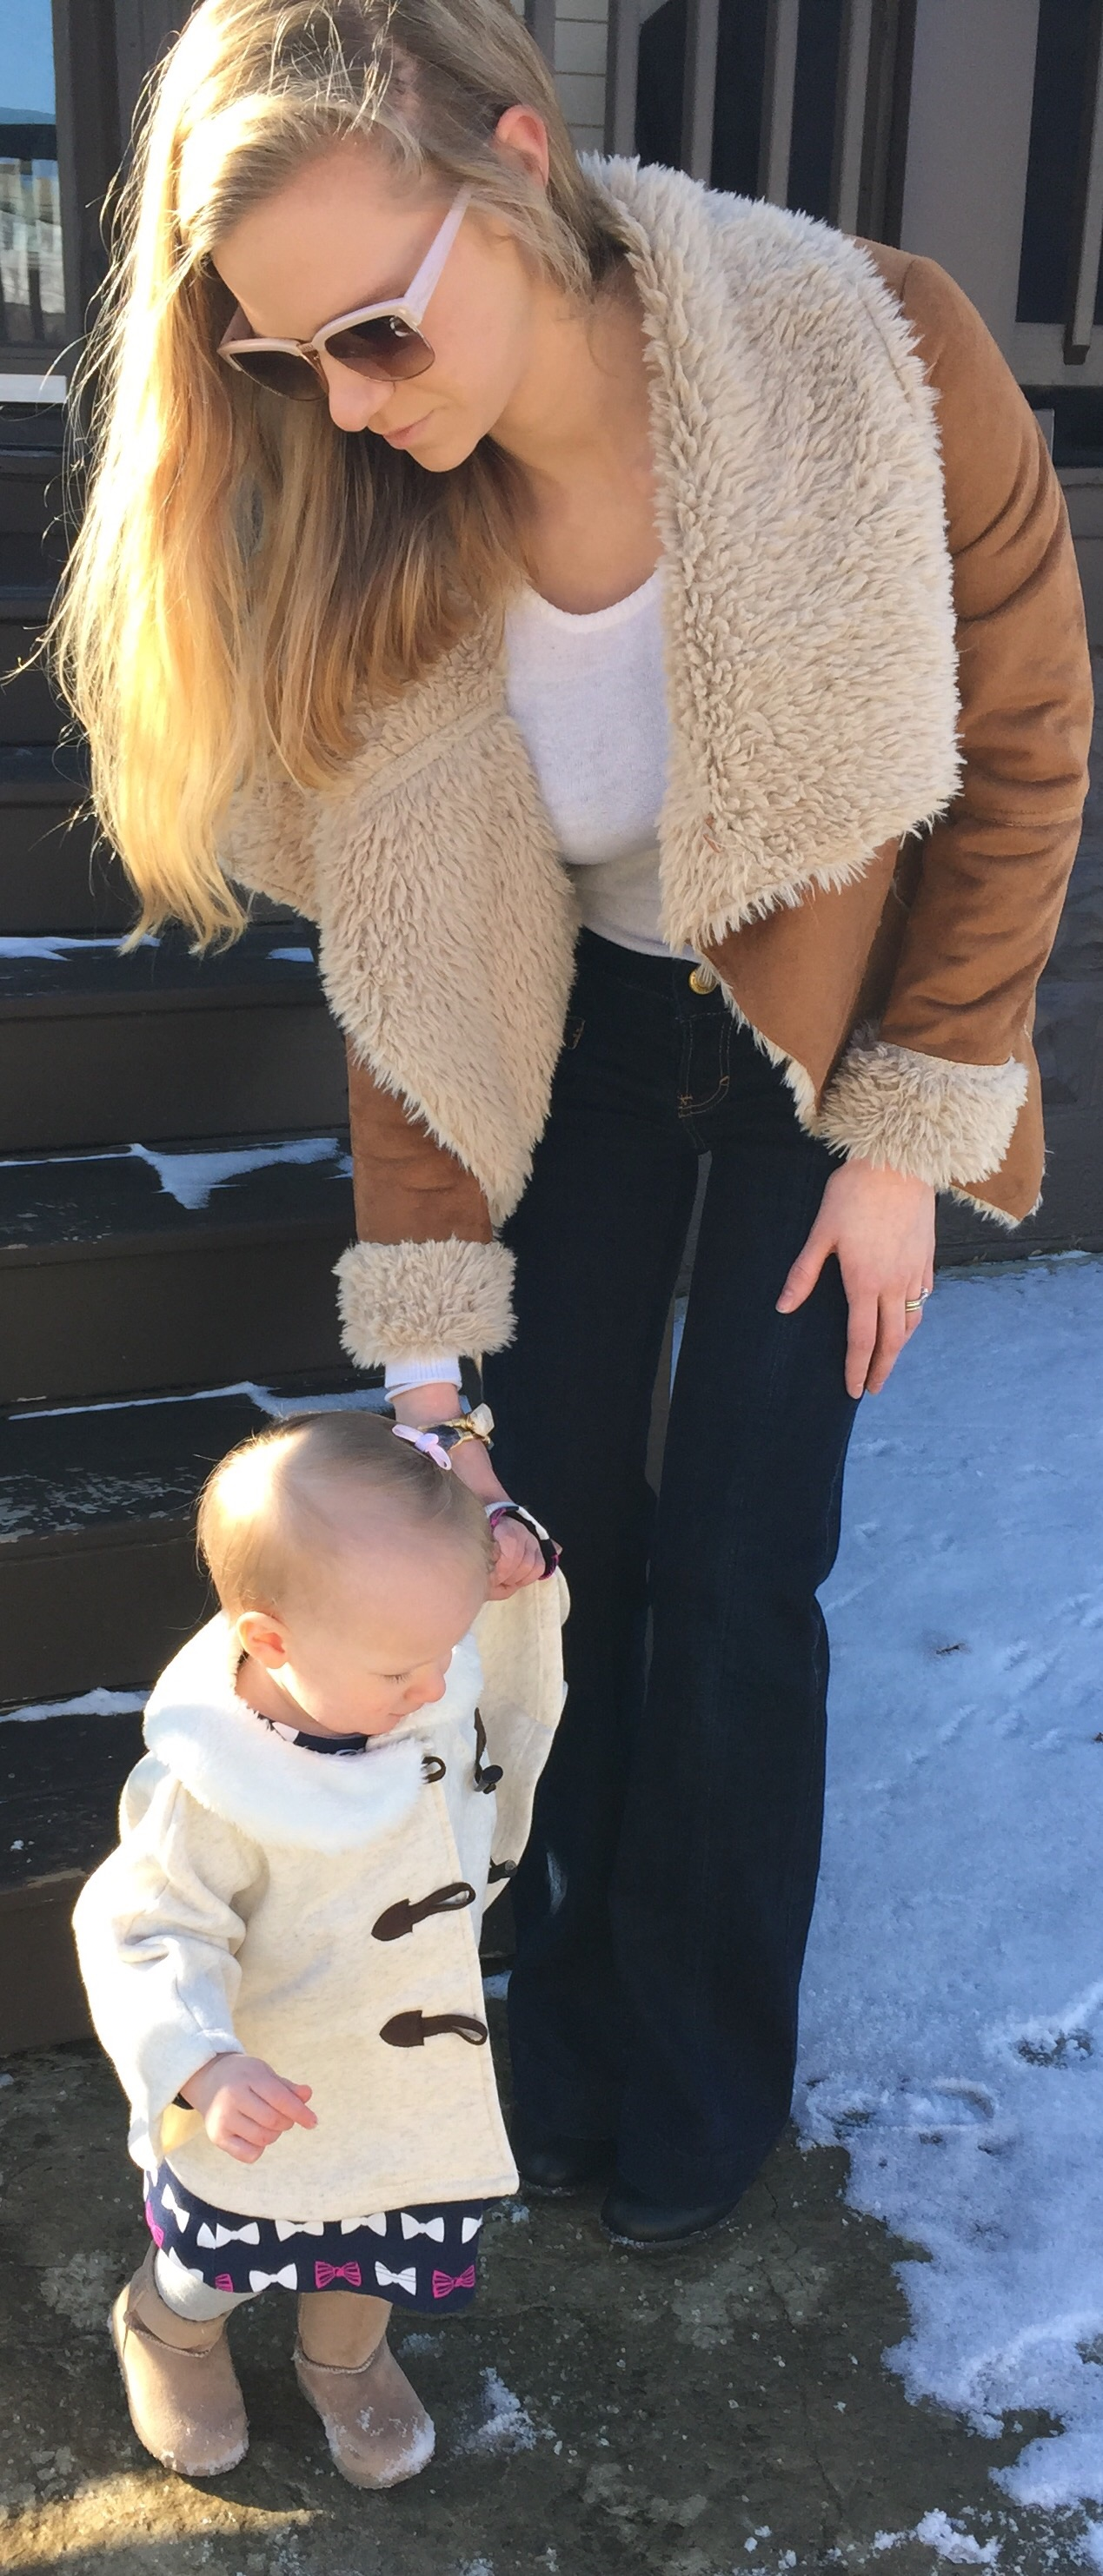 jeans, ponchos, dresses, jackets, baby and mommy fashion